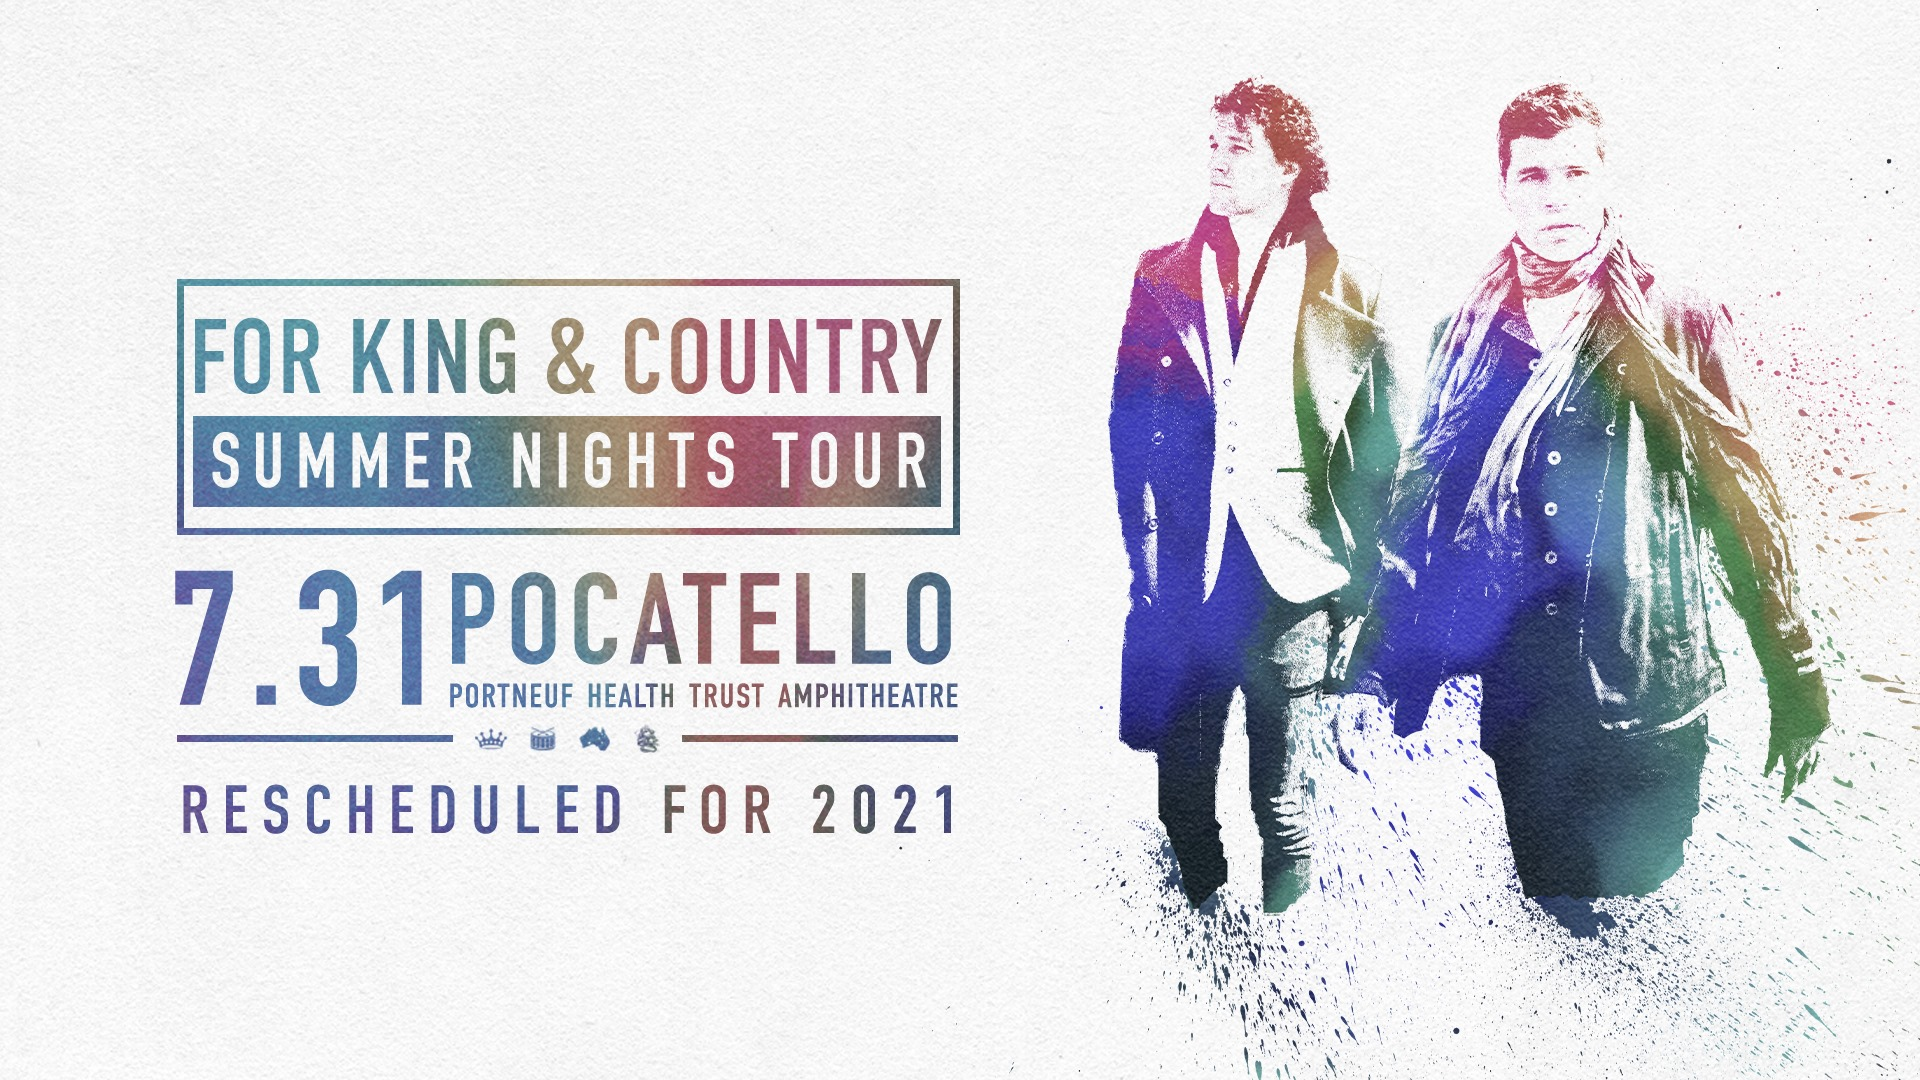 For King and Country with Company Summer Nights Tour